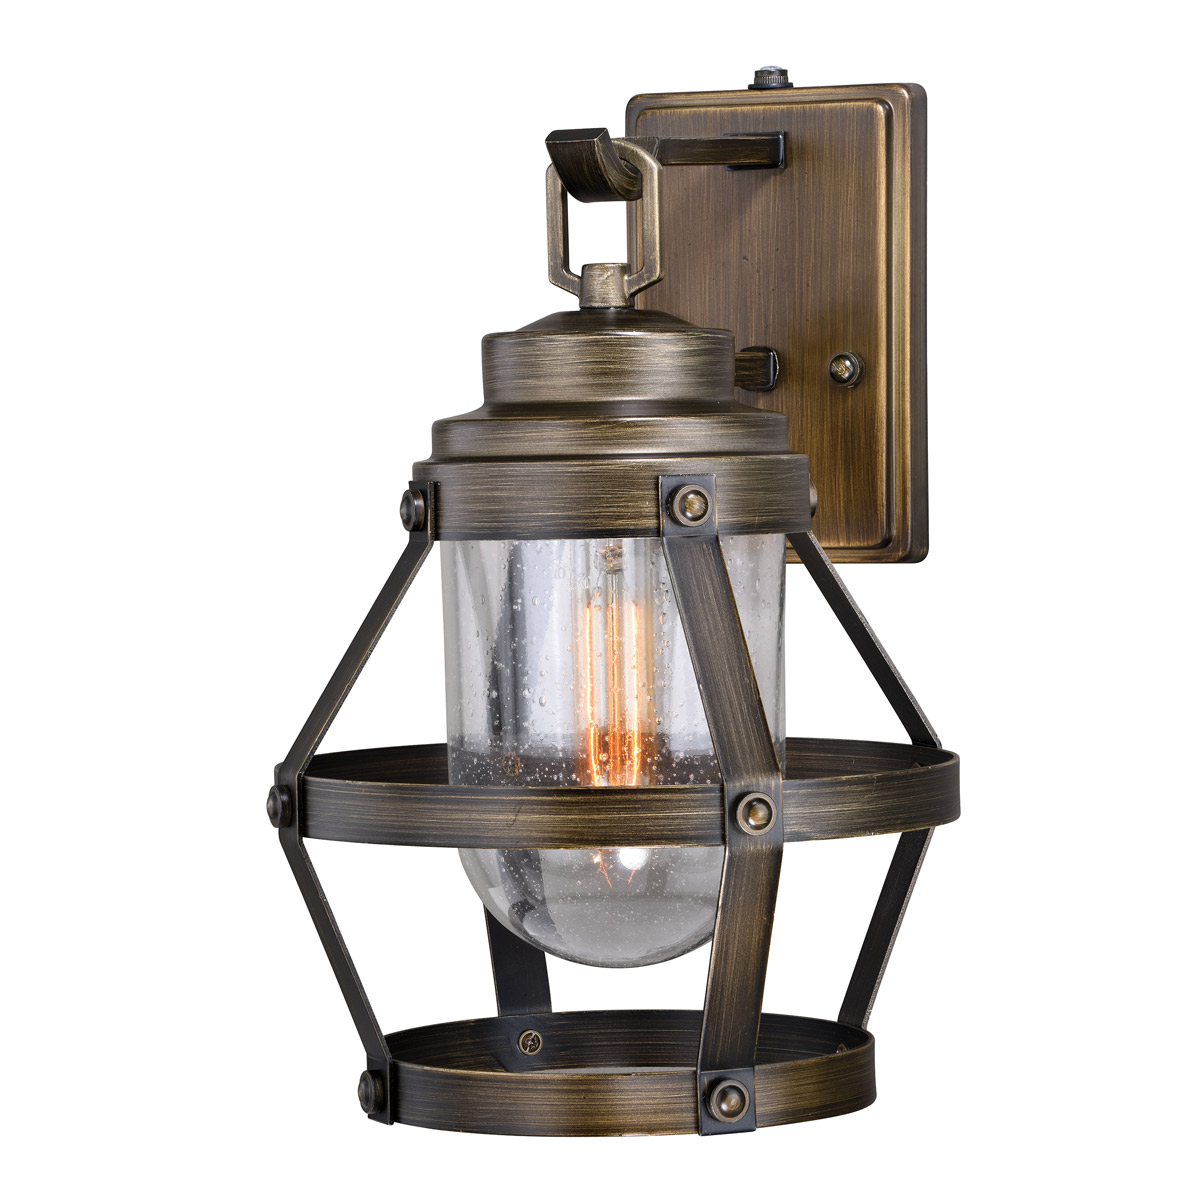 Rustic Wall Sconces Frontier Lantern Wall Sconce Medium